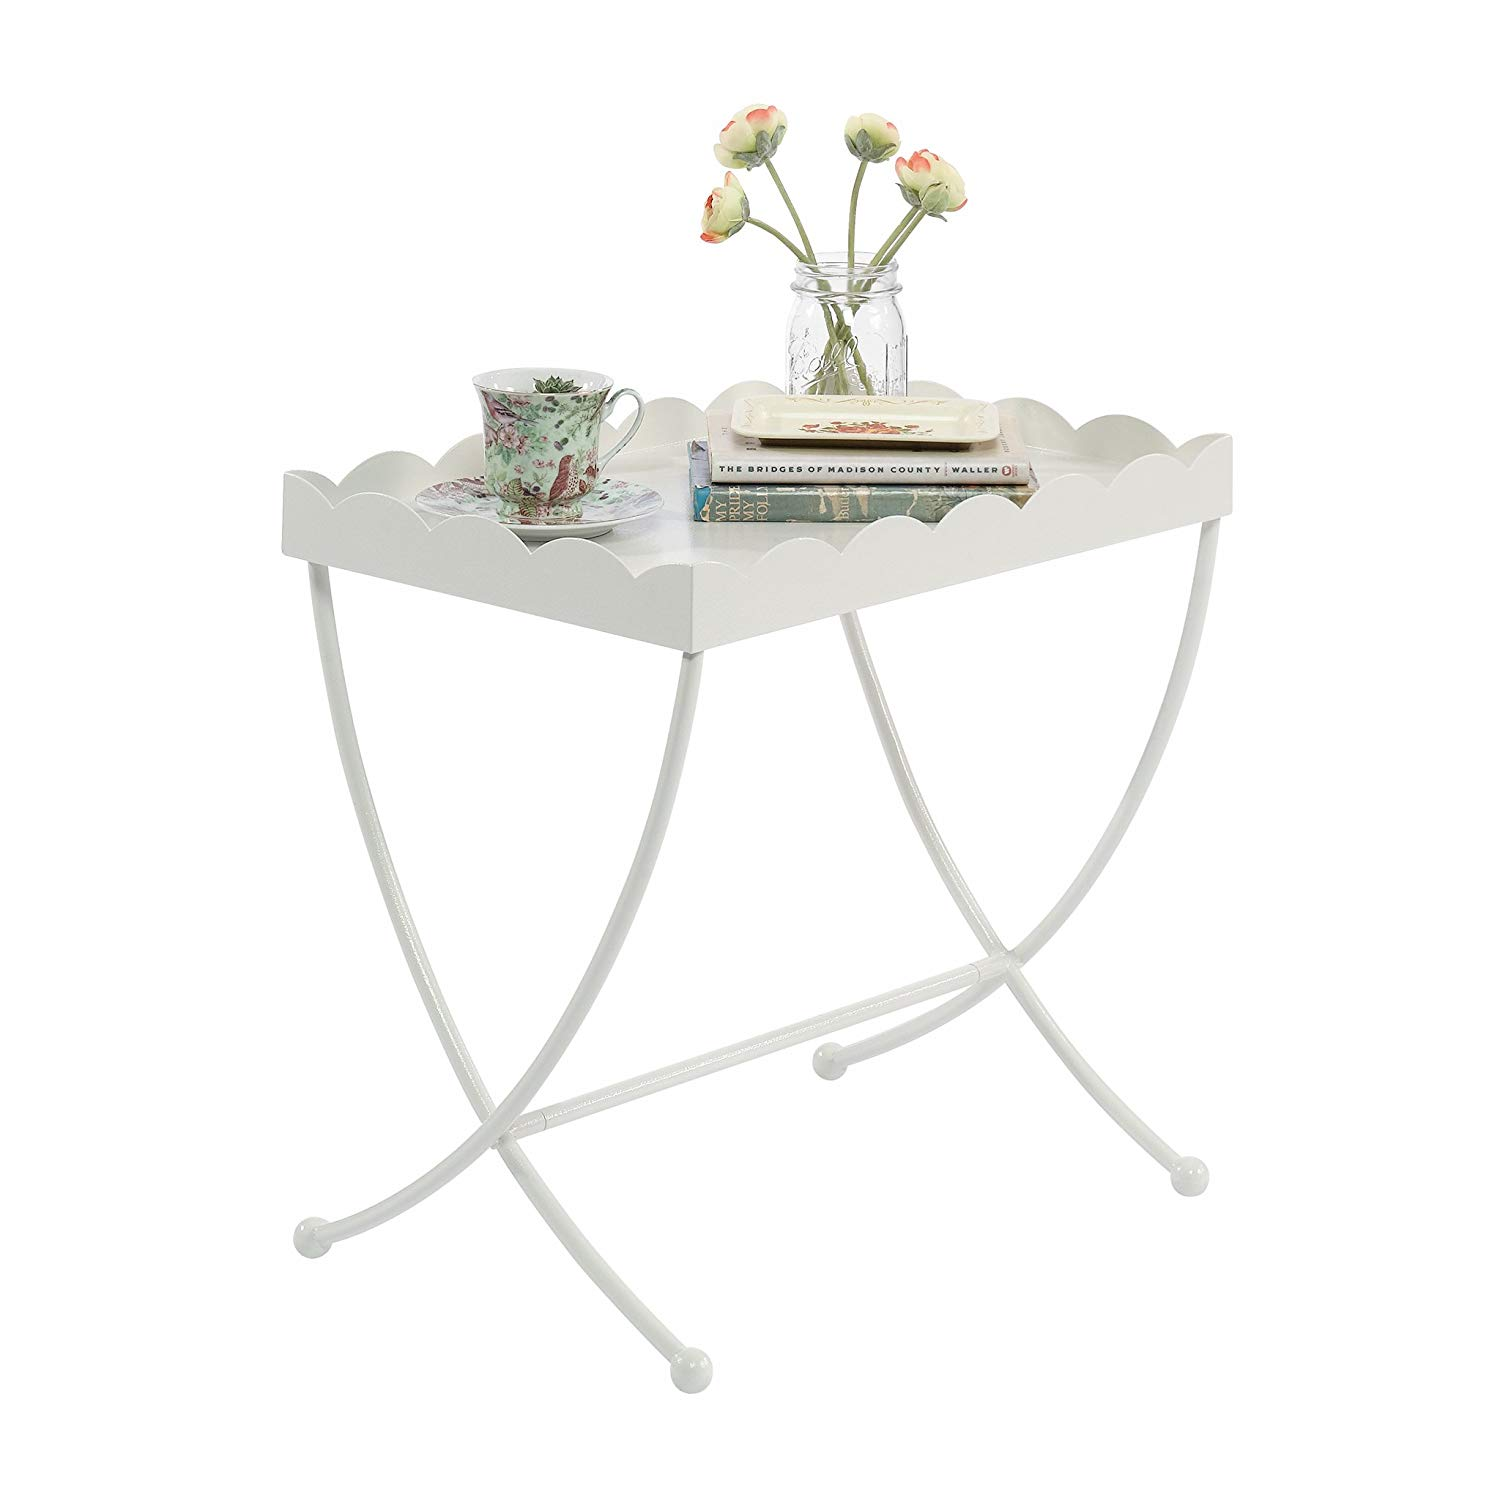 sauder eden rue side table cream colored end tables finish kitchen dining wood steel coffee decorating living room with dark brown furniture target nightstand iron glass big lots